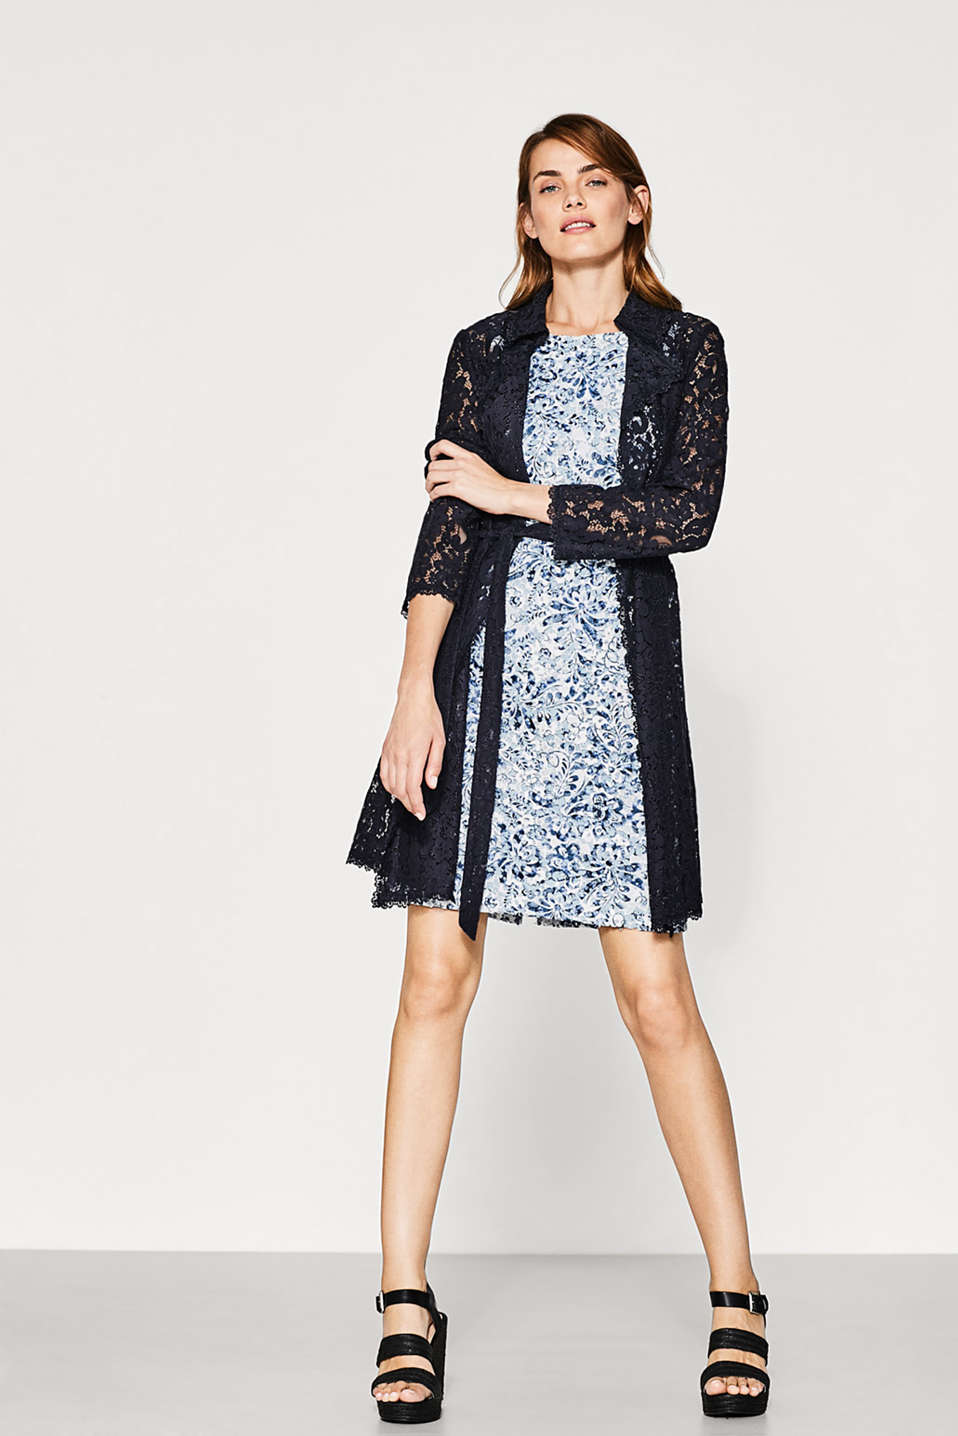 Fitted dress in printed lace